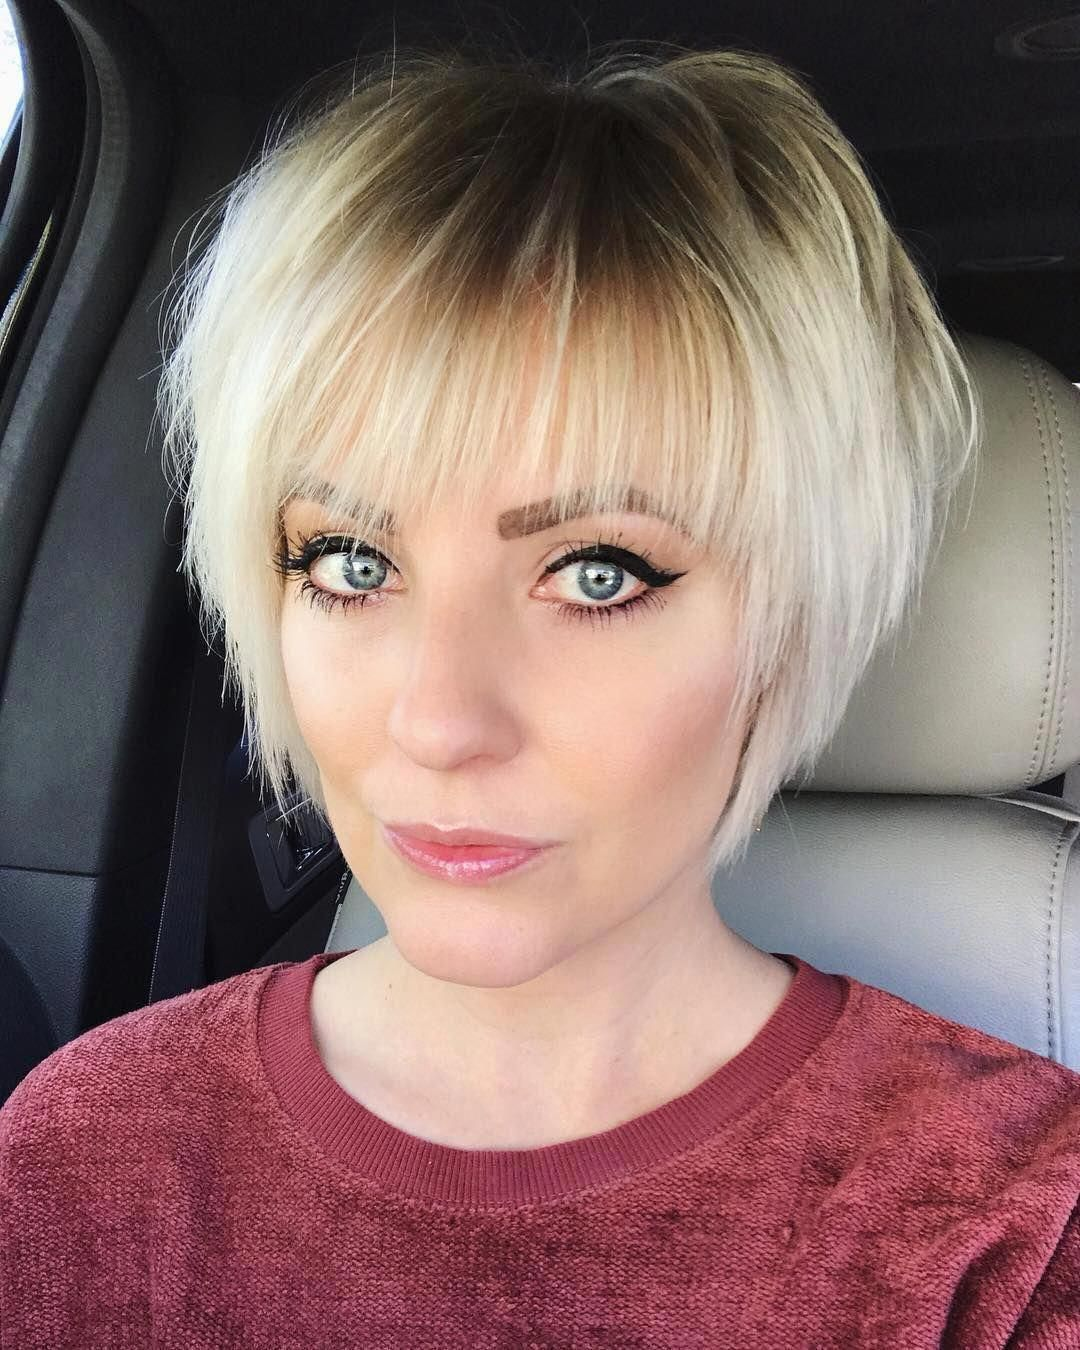 """Arizona Hairstylist on Instagram: """"Here's where I'm at with the grow out process. Smudged my r ..."""